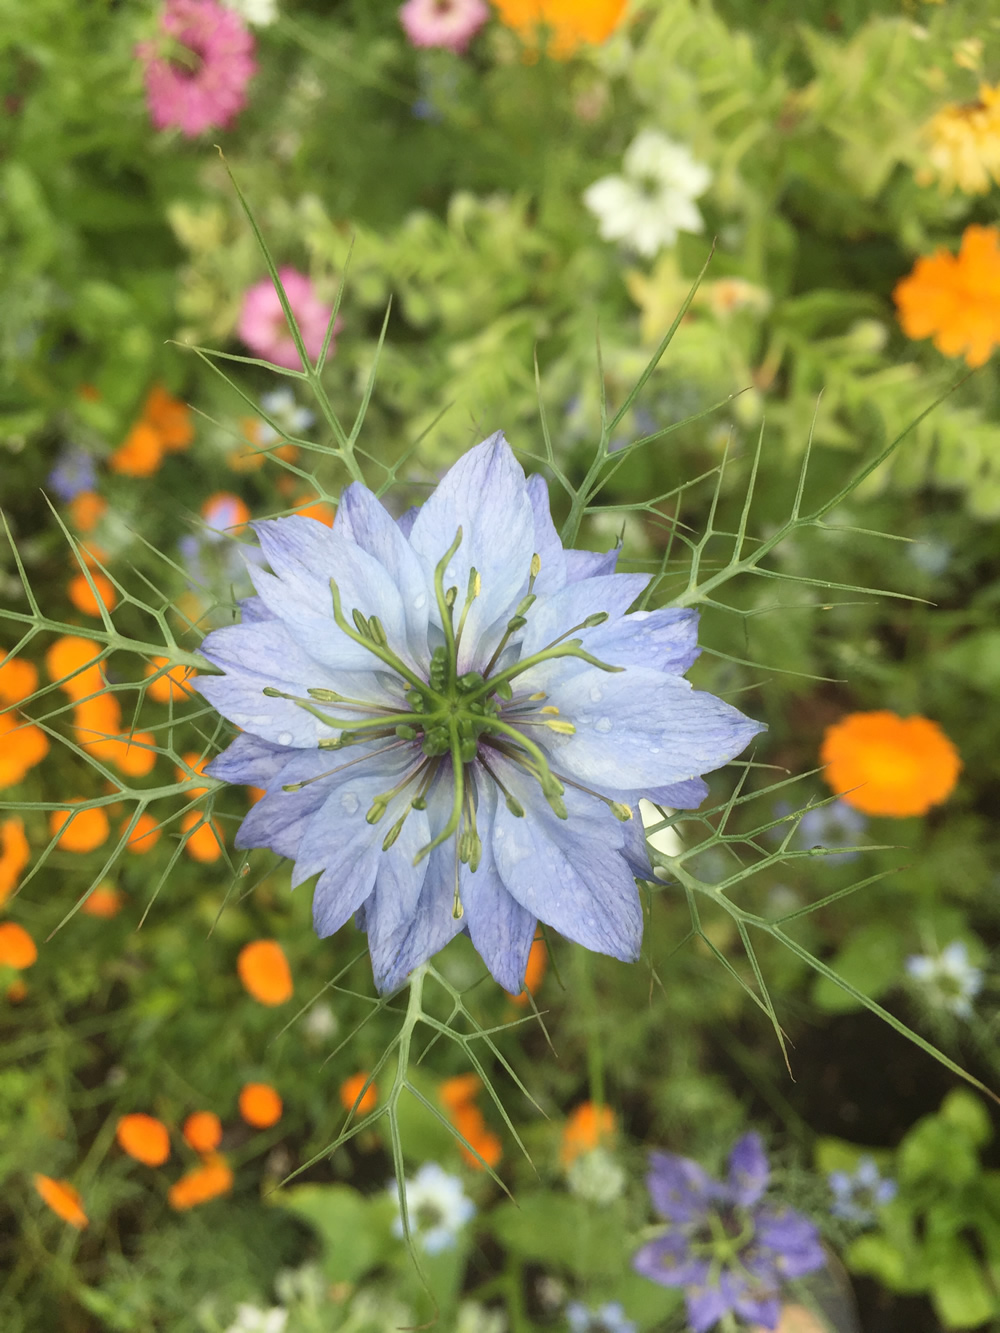 A blue Nigella flower in the foreground of other colourful flowers